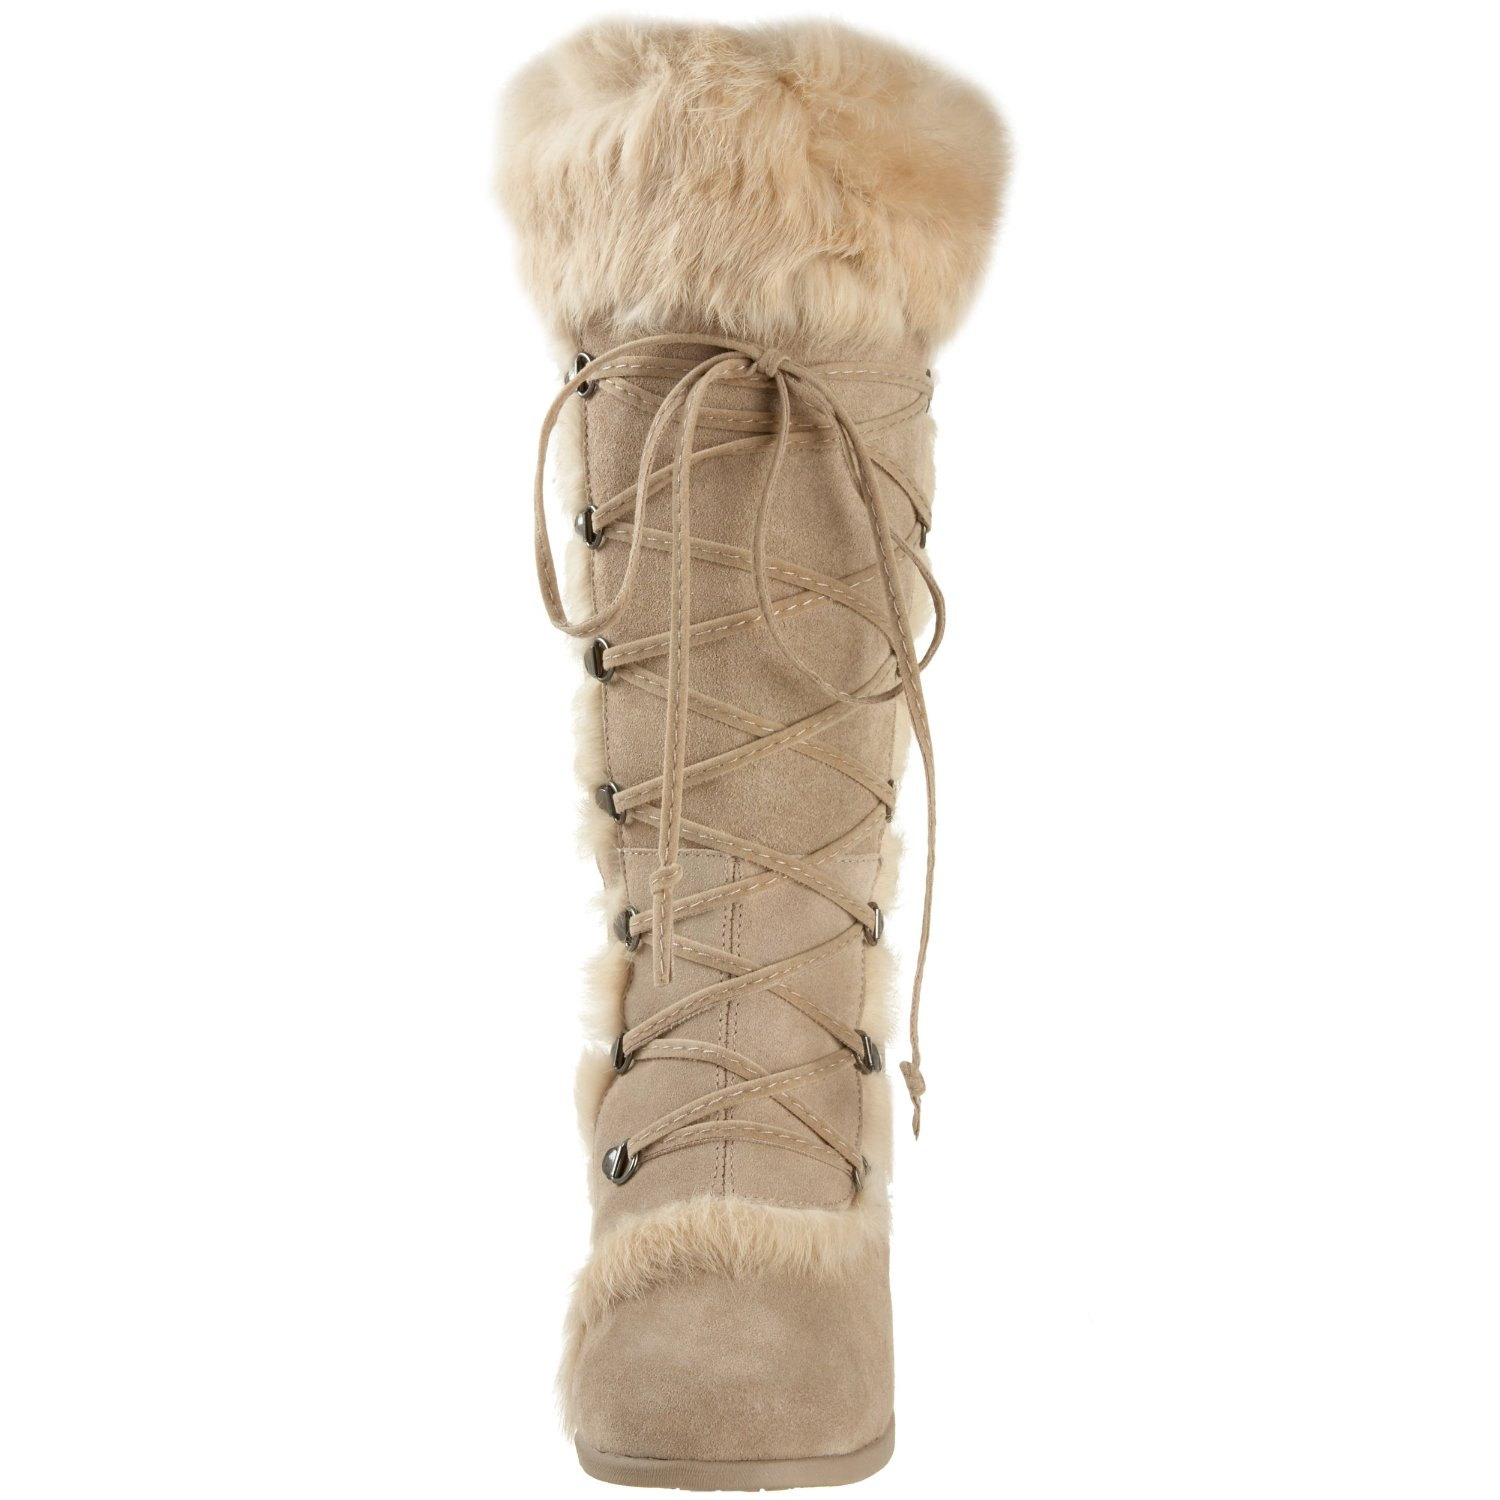 BEARPAW's goal is to provide comfortable, fashionable footwear and make shoes affordable for everyone. BEARPAW boots, shoes and slippers feature top-notch materials such as shearling and suede, producing a focus on quality that results in unsurpassed comfort and style every time.